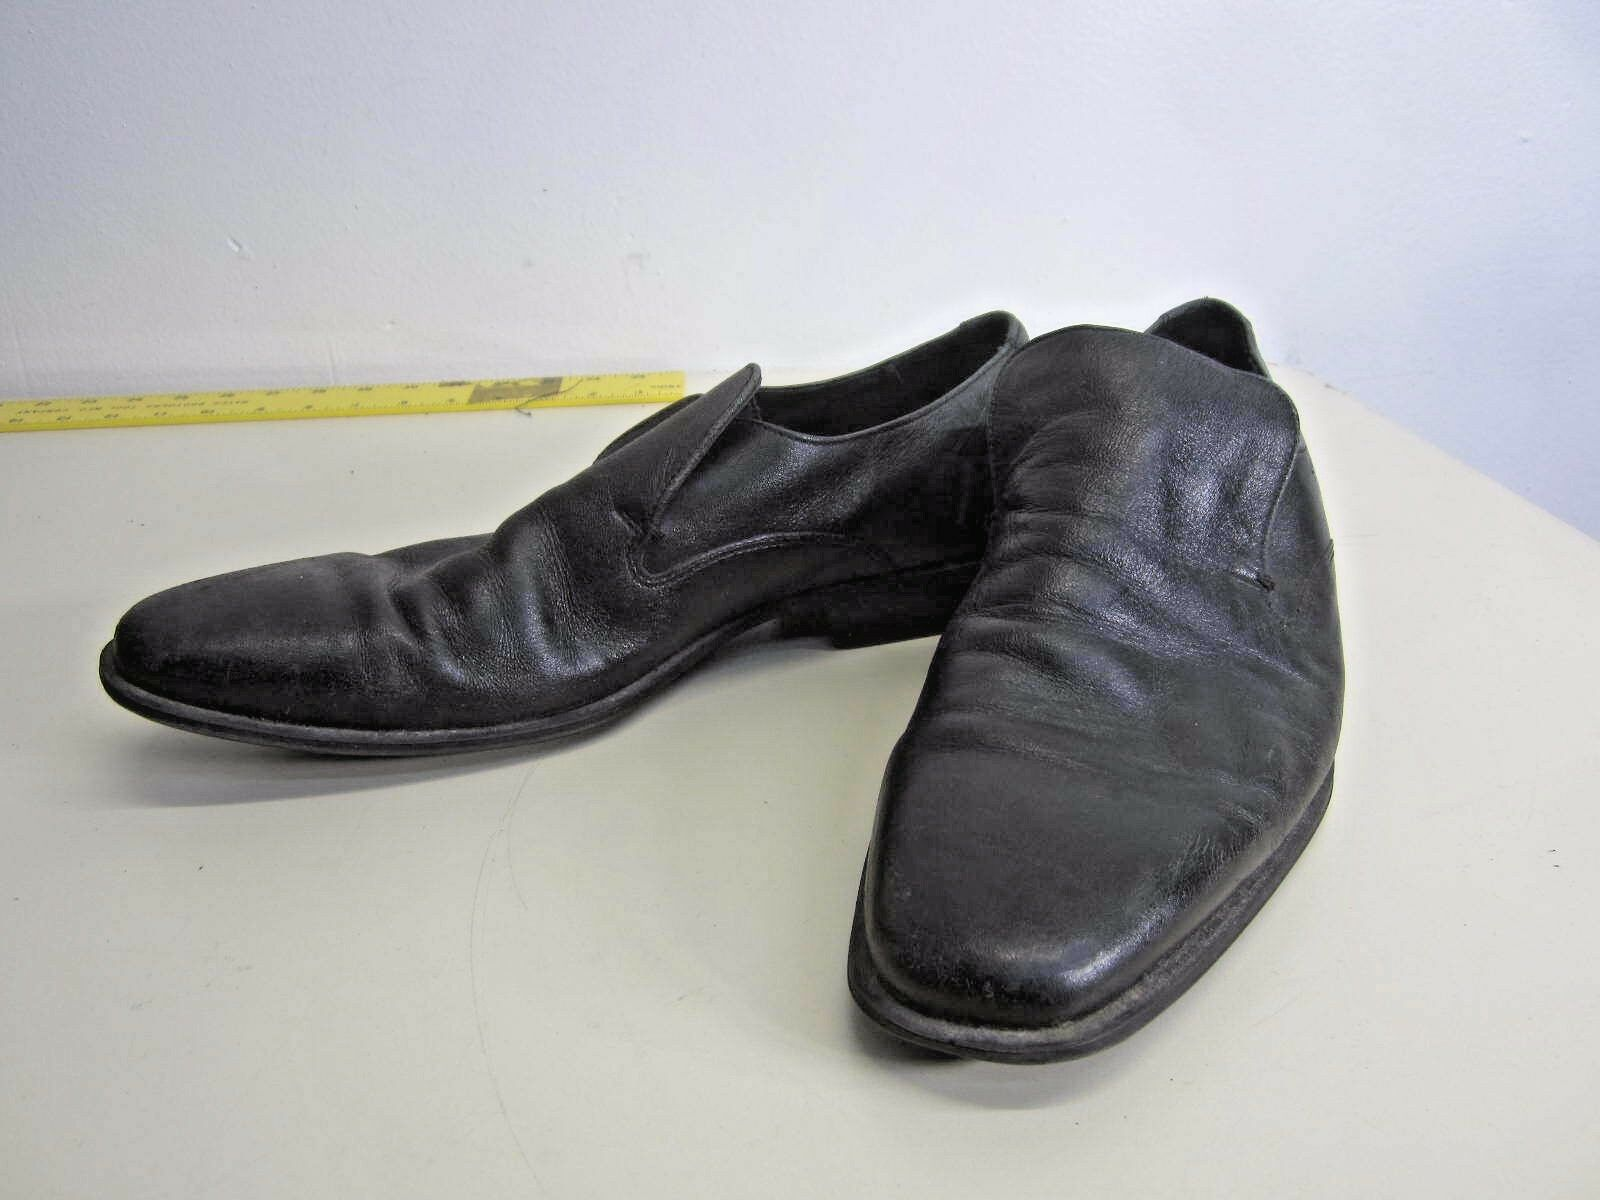 Cole Haan Loafers Slip On Dress shoes black leather rubber sole sz 9 M